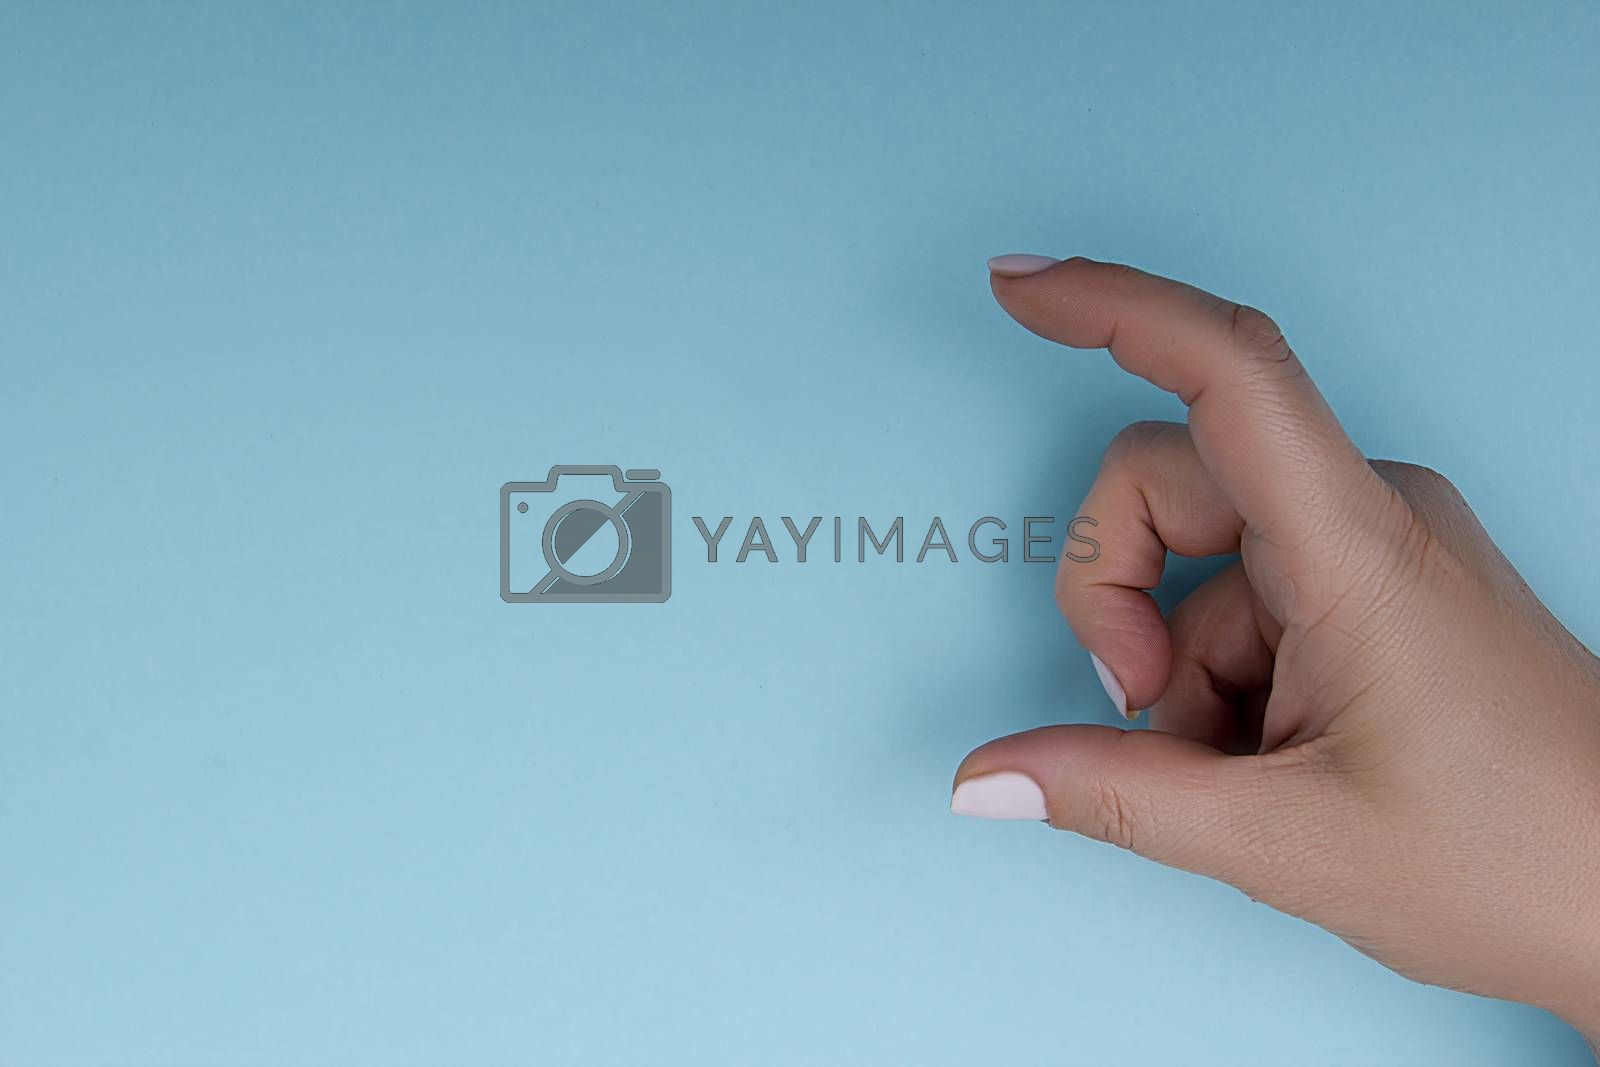 Female hand measuring or holding invisible item while showing small amount of something